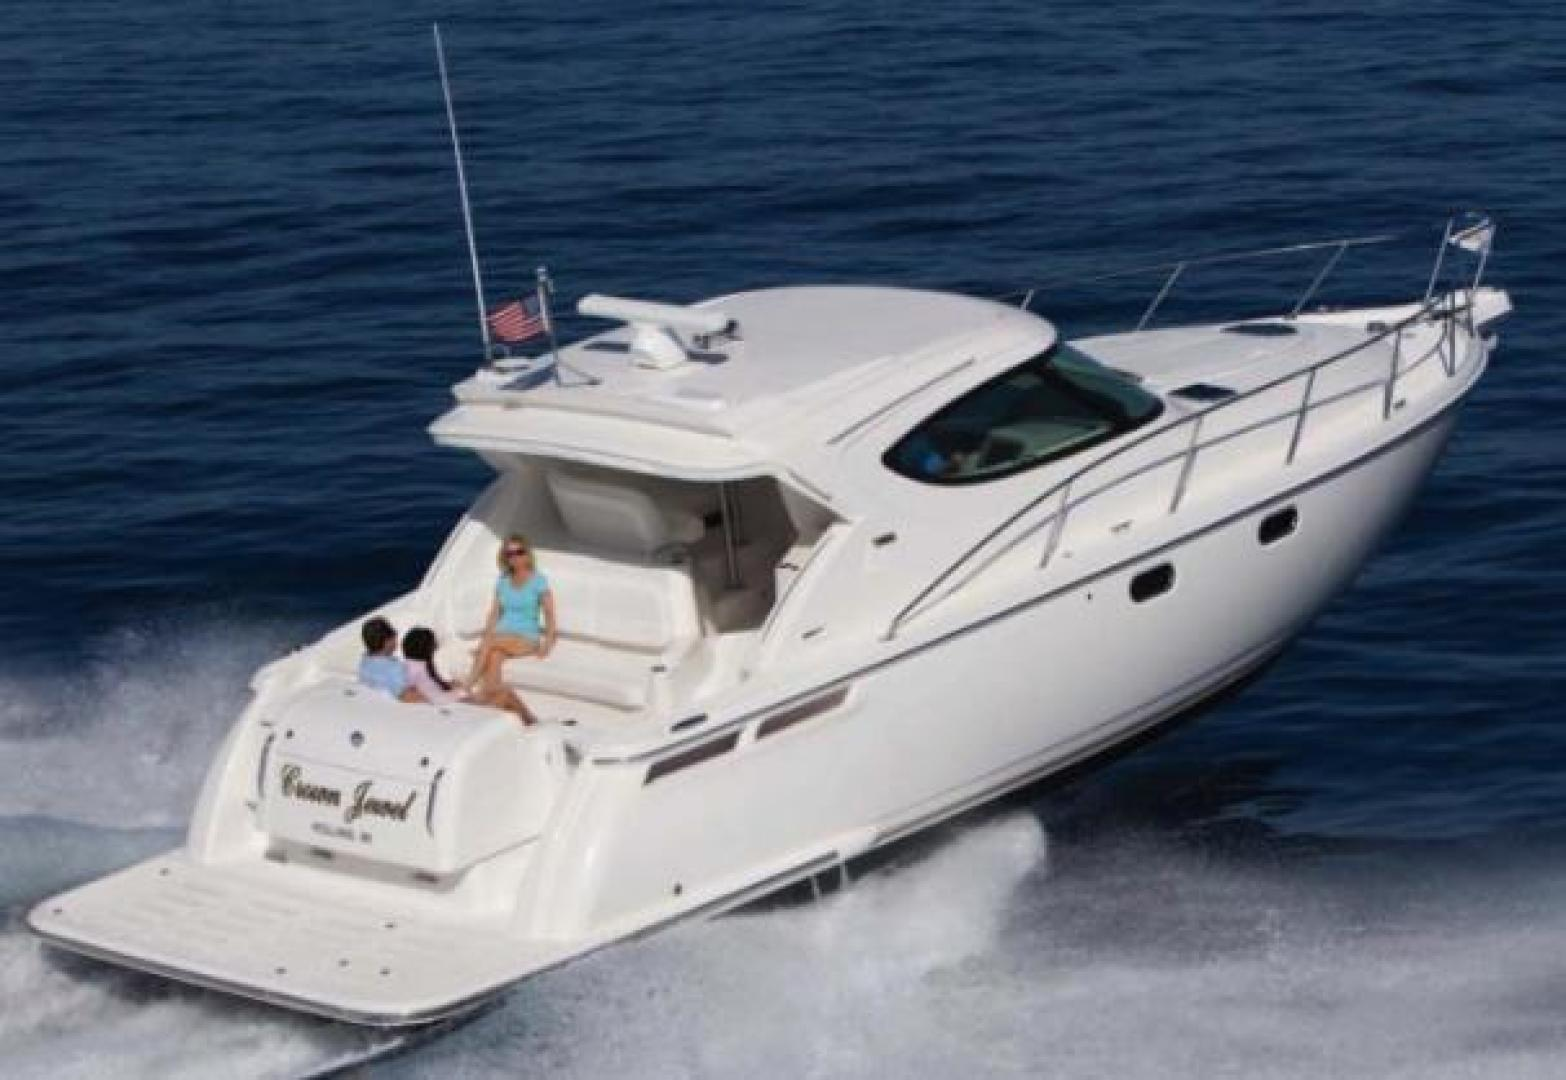 Tiara Yachts-4500 Sovran 2011-SOMEBEACH SOMEWHERE Fort Lauderdale-Florida-United States-1444117 | Thumbnail